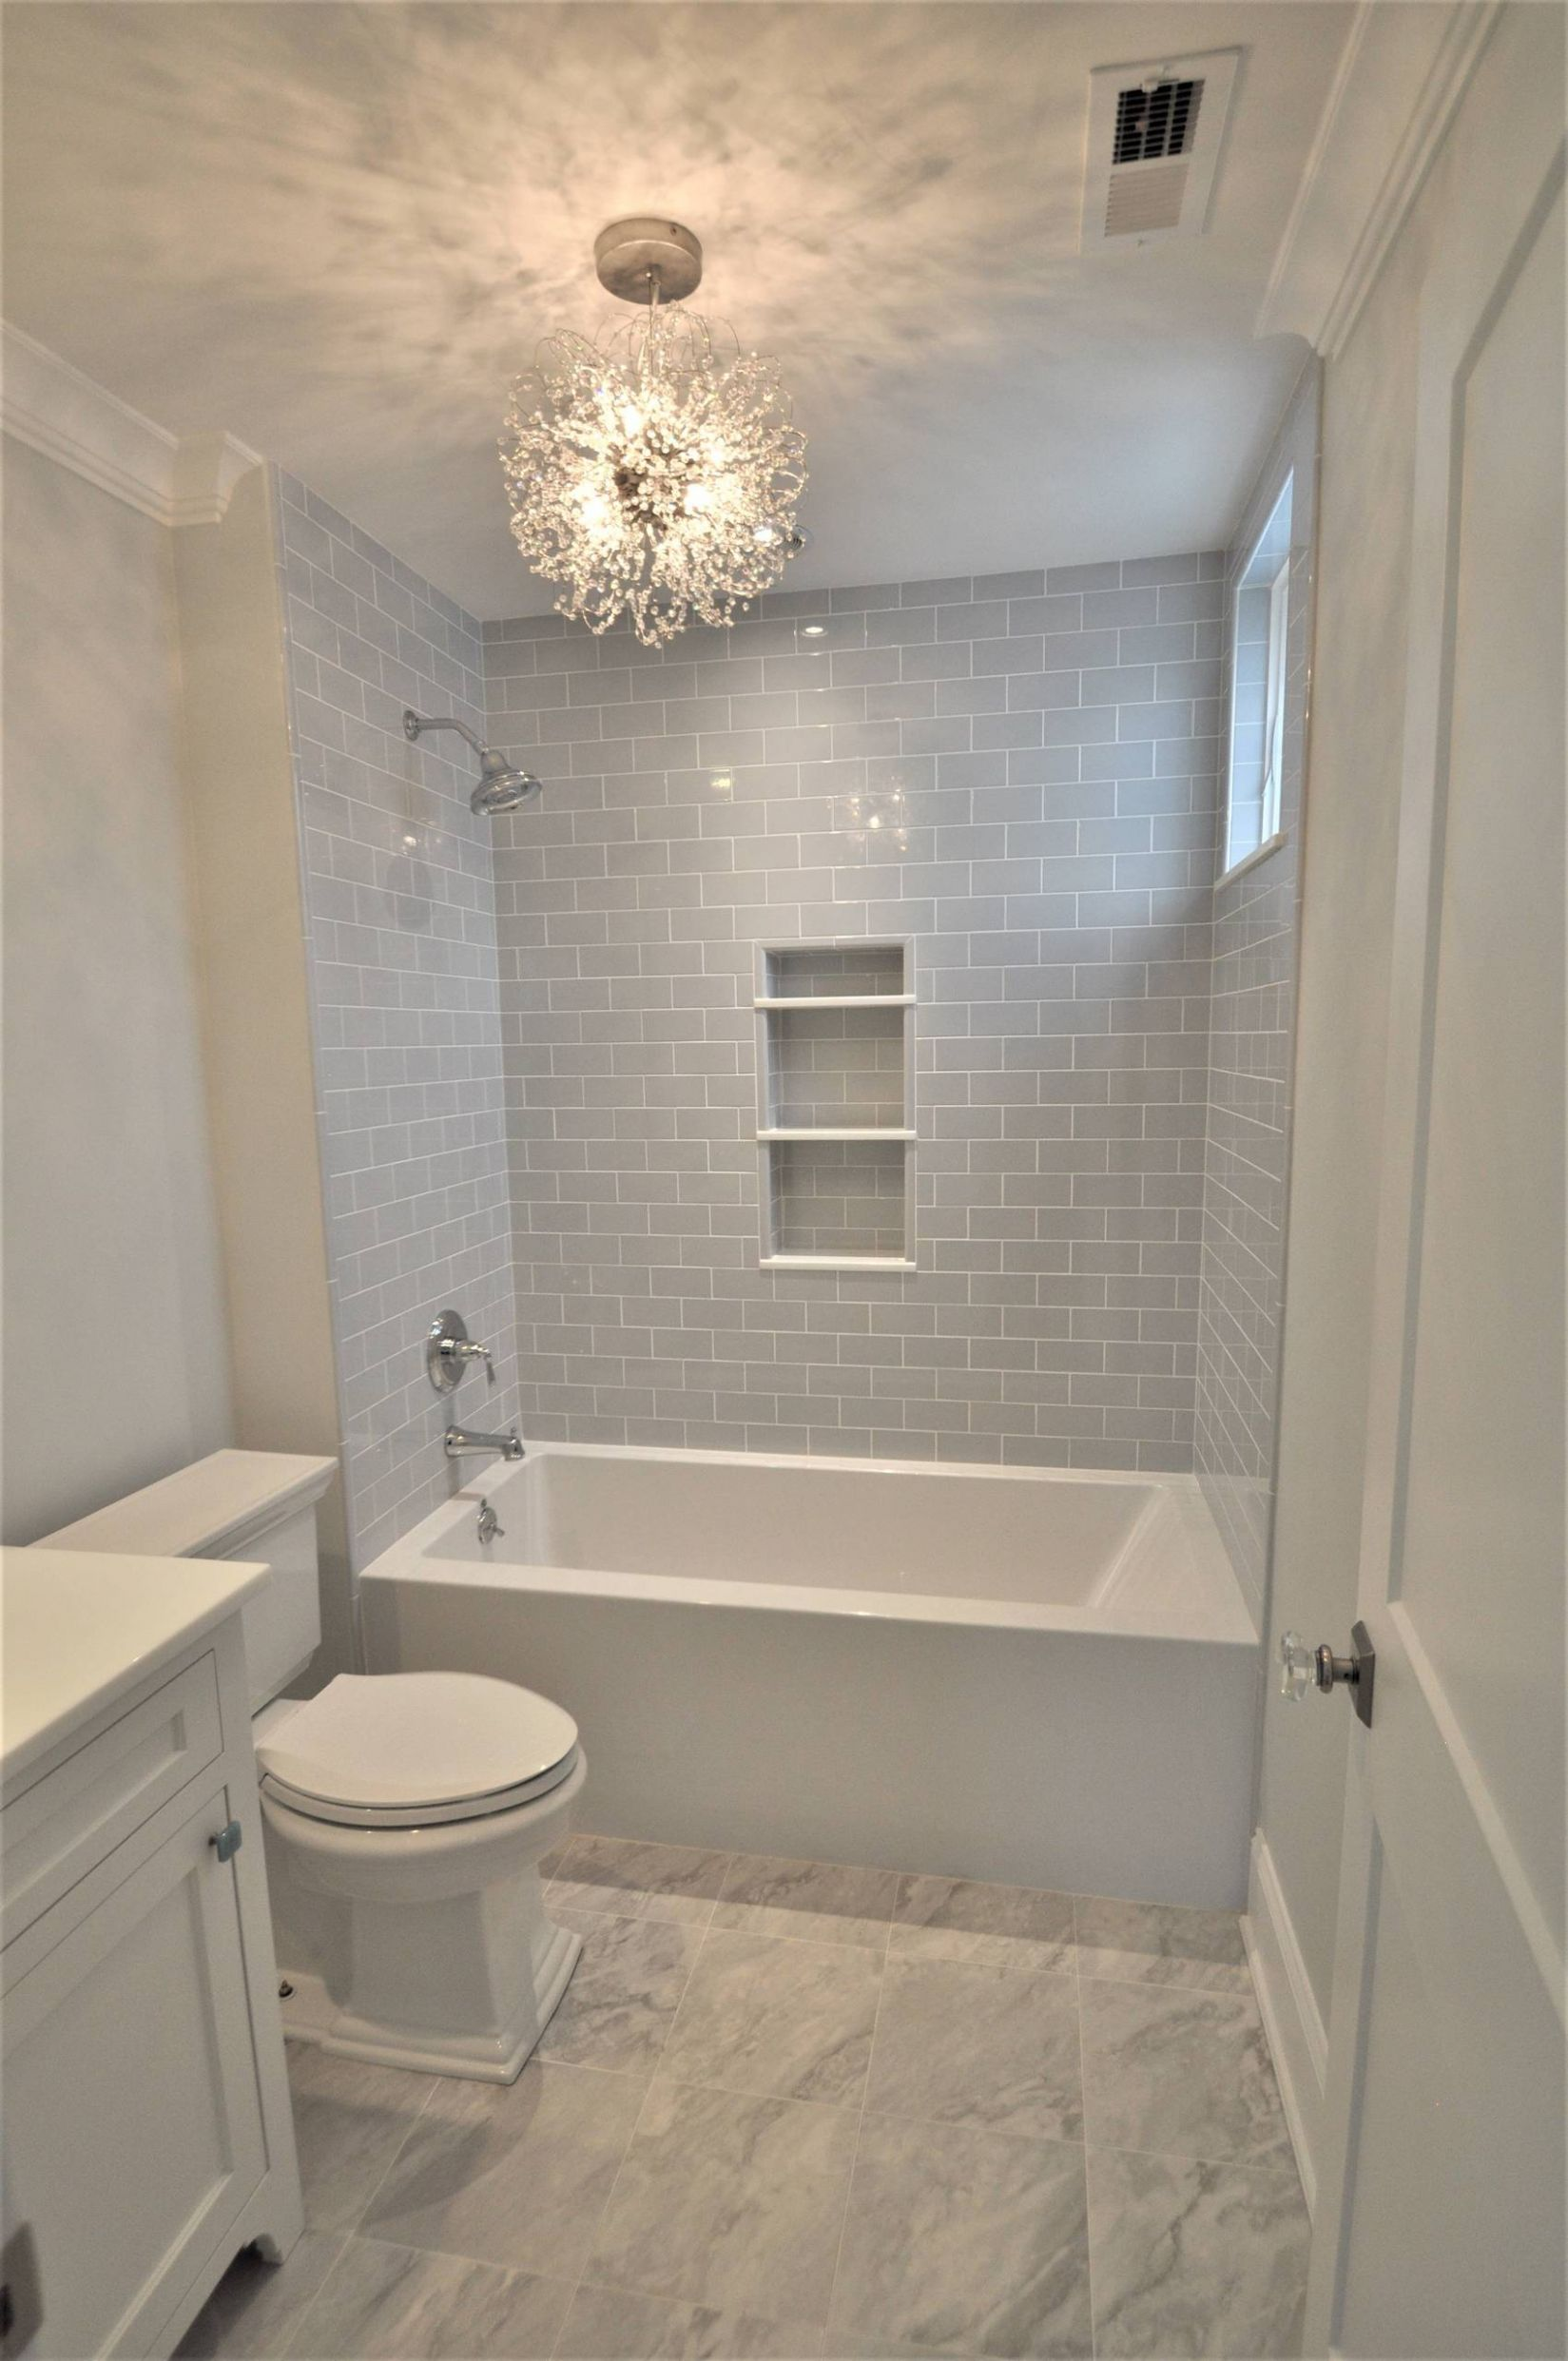 9 Beautiful Small Bathroom Pictures & Ideas | Houzz - bathroom ideas small